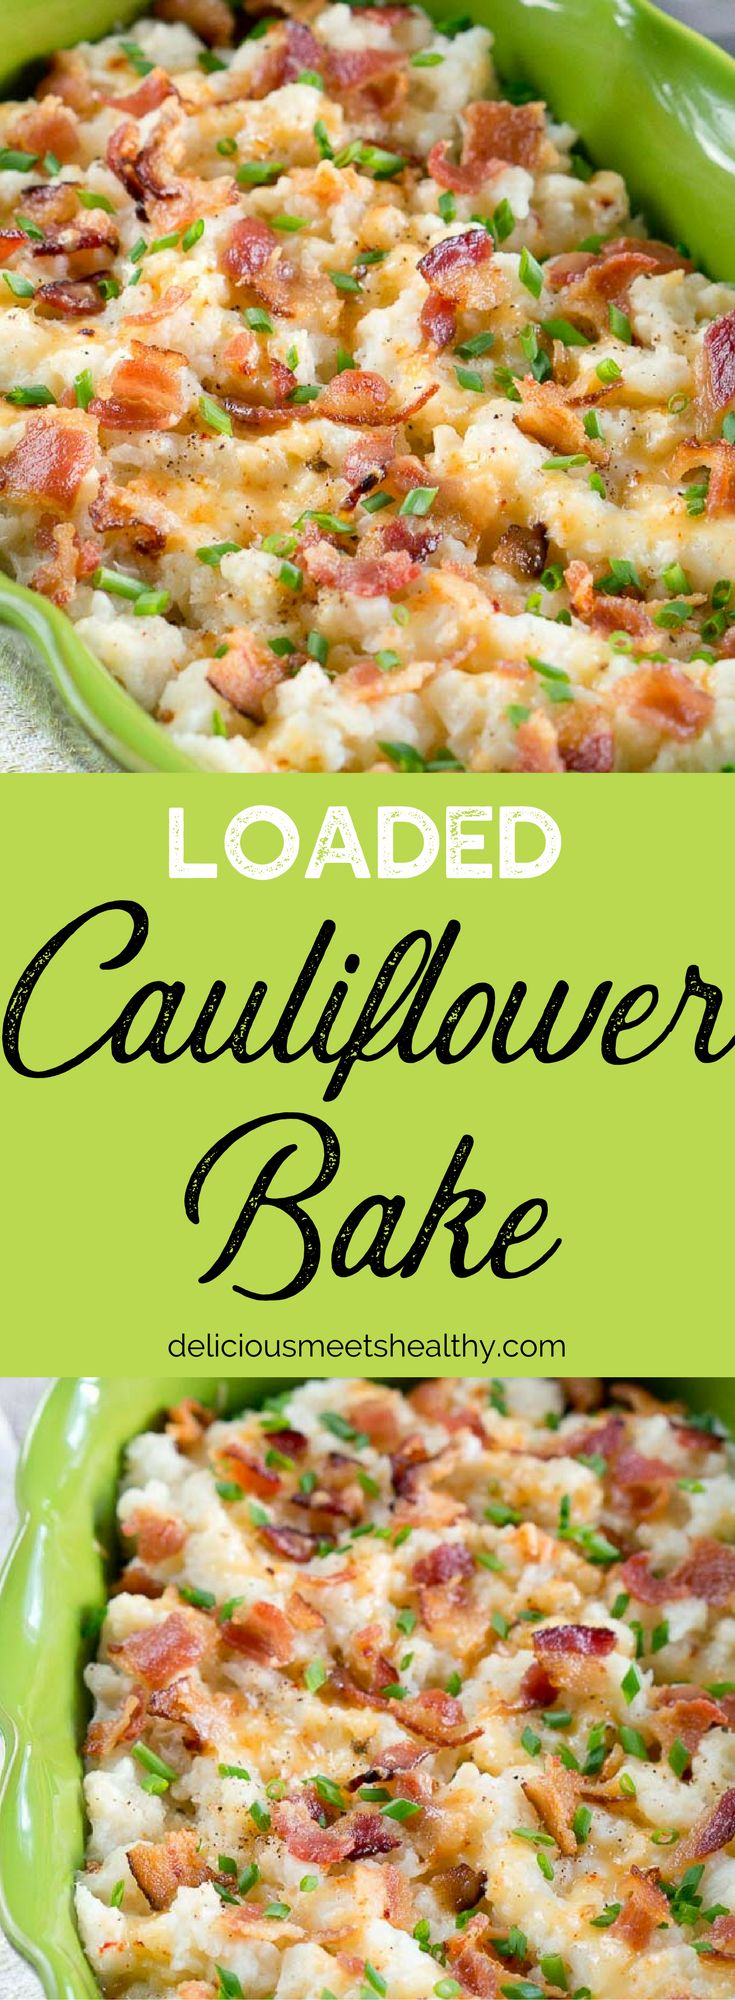 Loaded Cauliflower Bake is the perfect side dish – lower in carbs and so so good! So flavorful, creamy and so easy to make.